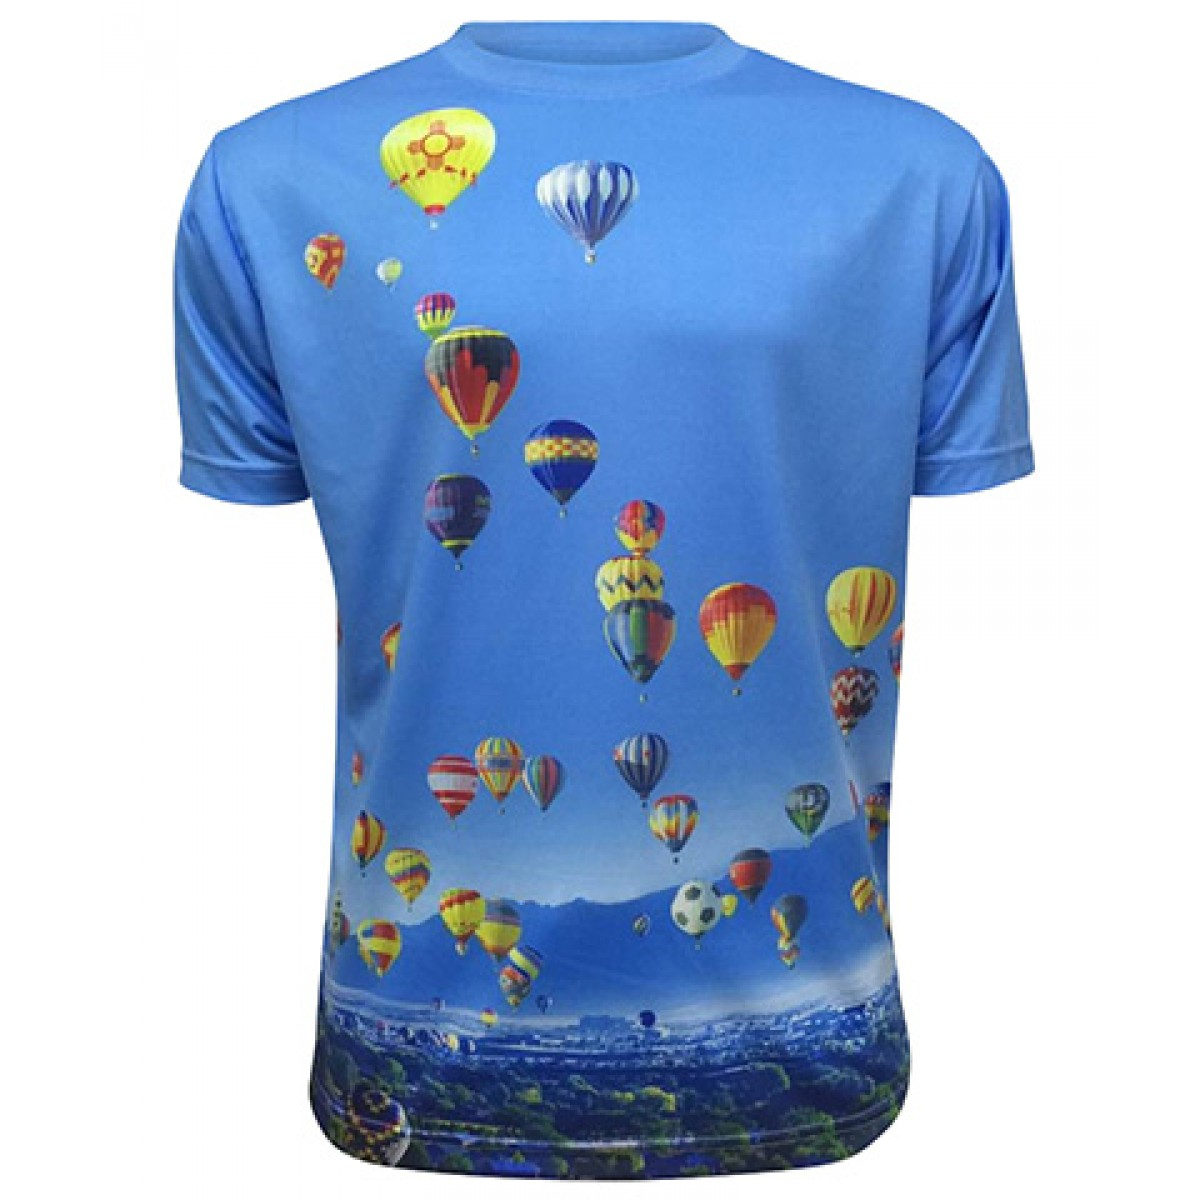 AIBF Sublimated Short Sleeve-Blue-YS